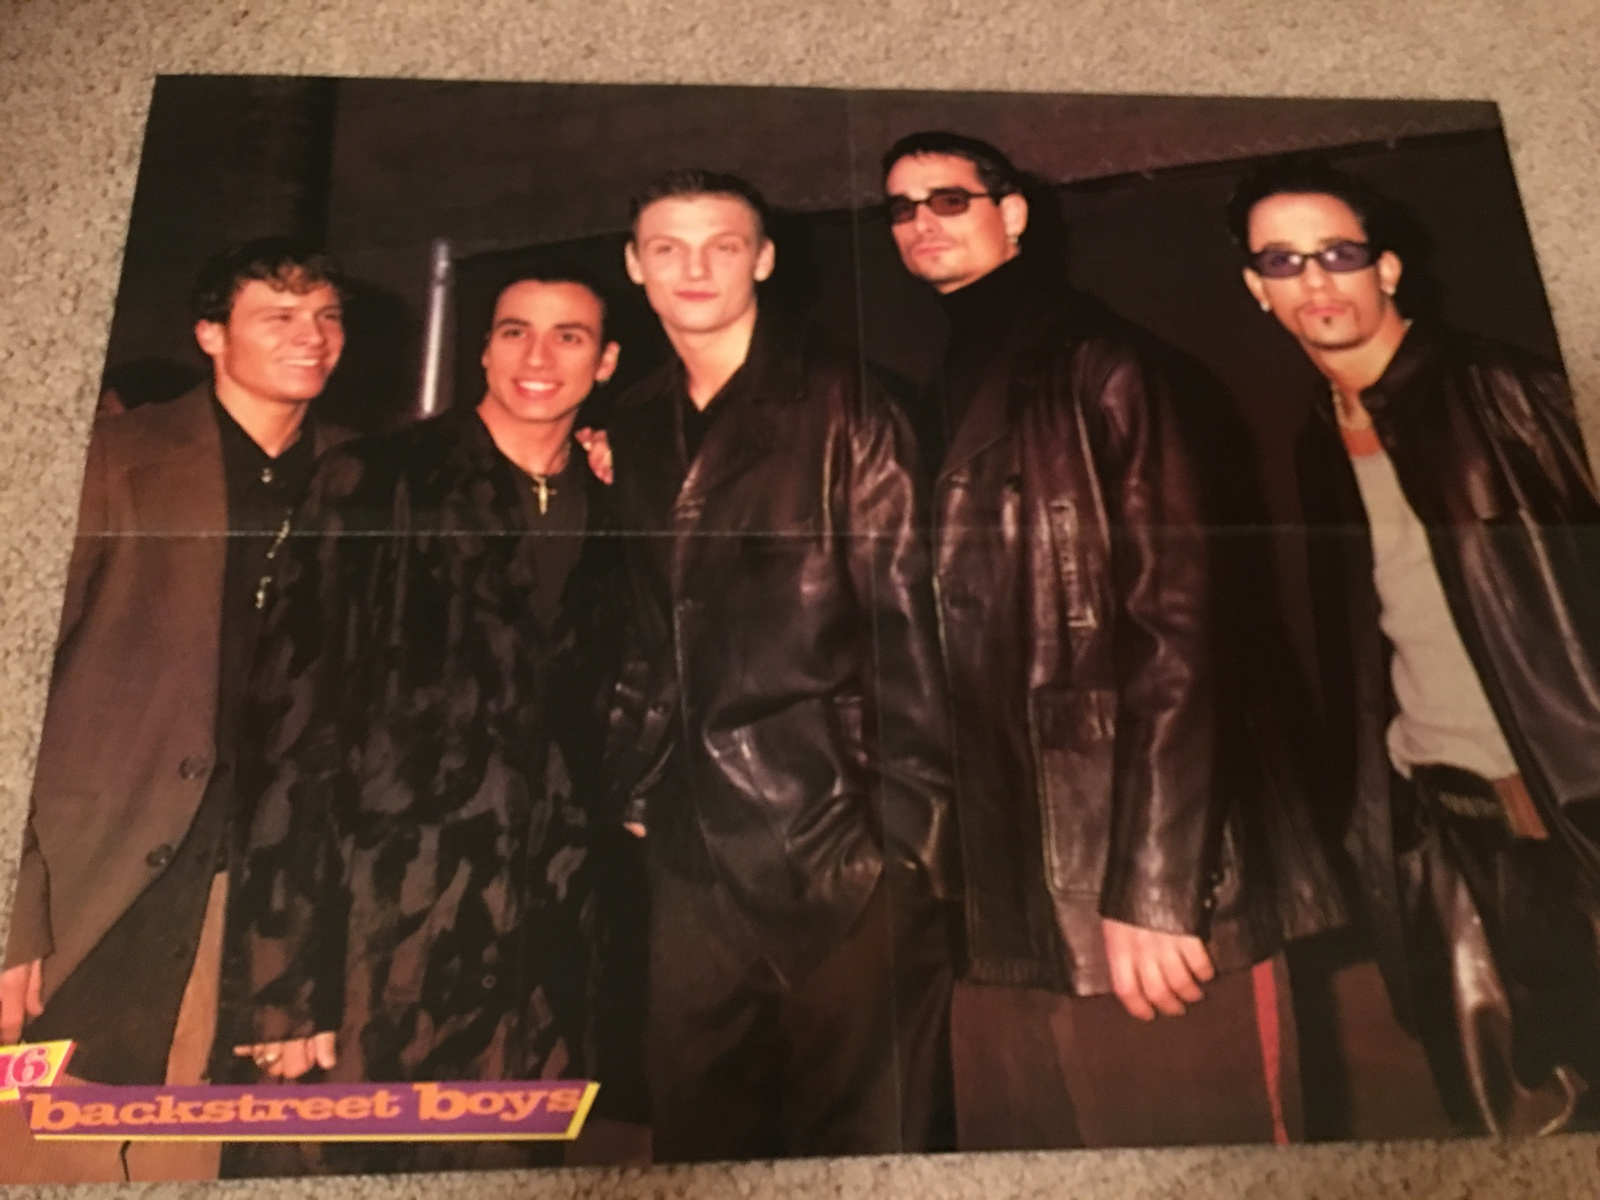 Primary image for Hanson Backstreet Boys teen magazine poster clipping MTV Awards Show